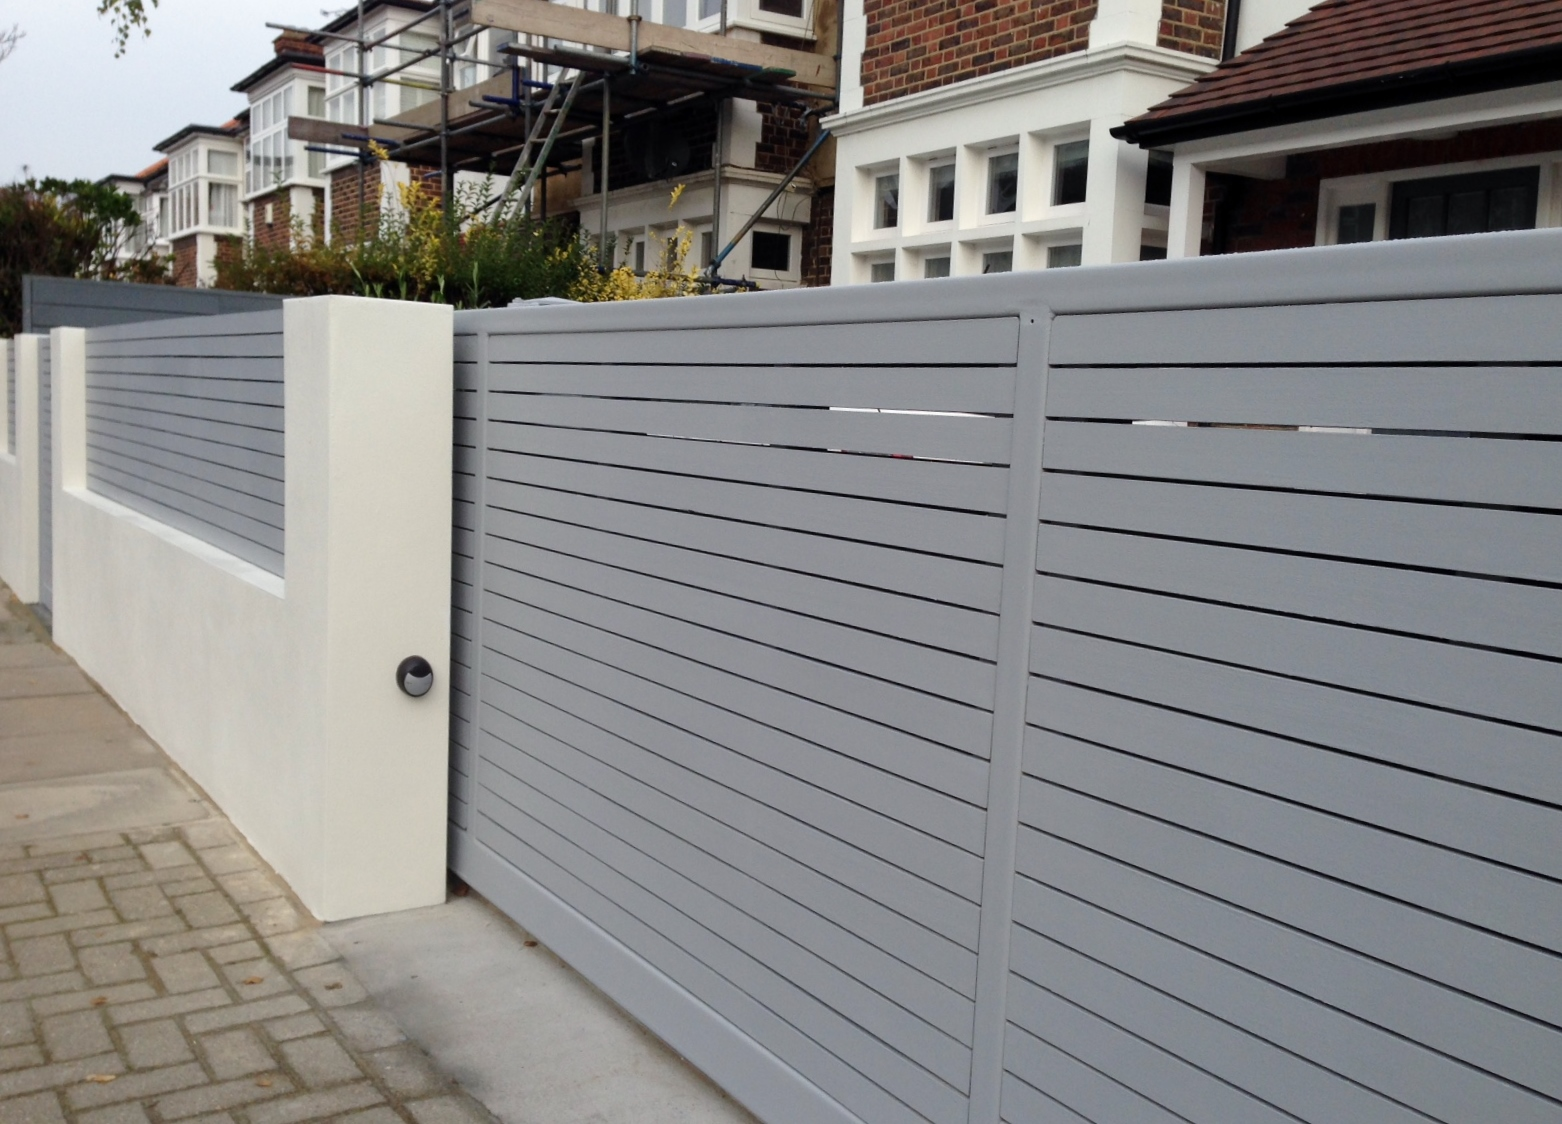 Boundary Wall Designs Top for Pinterest